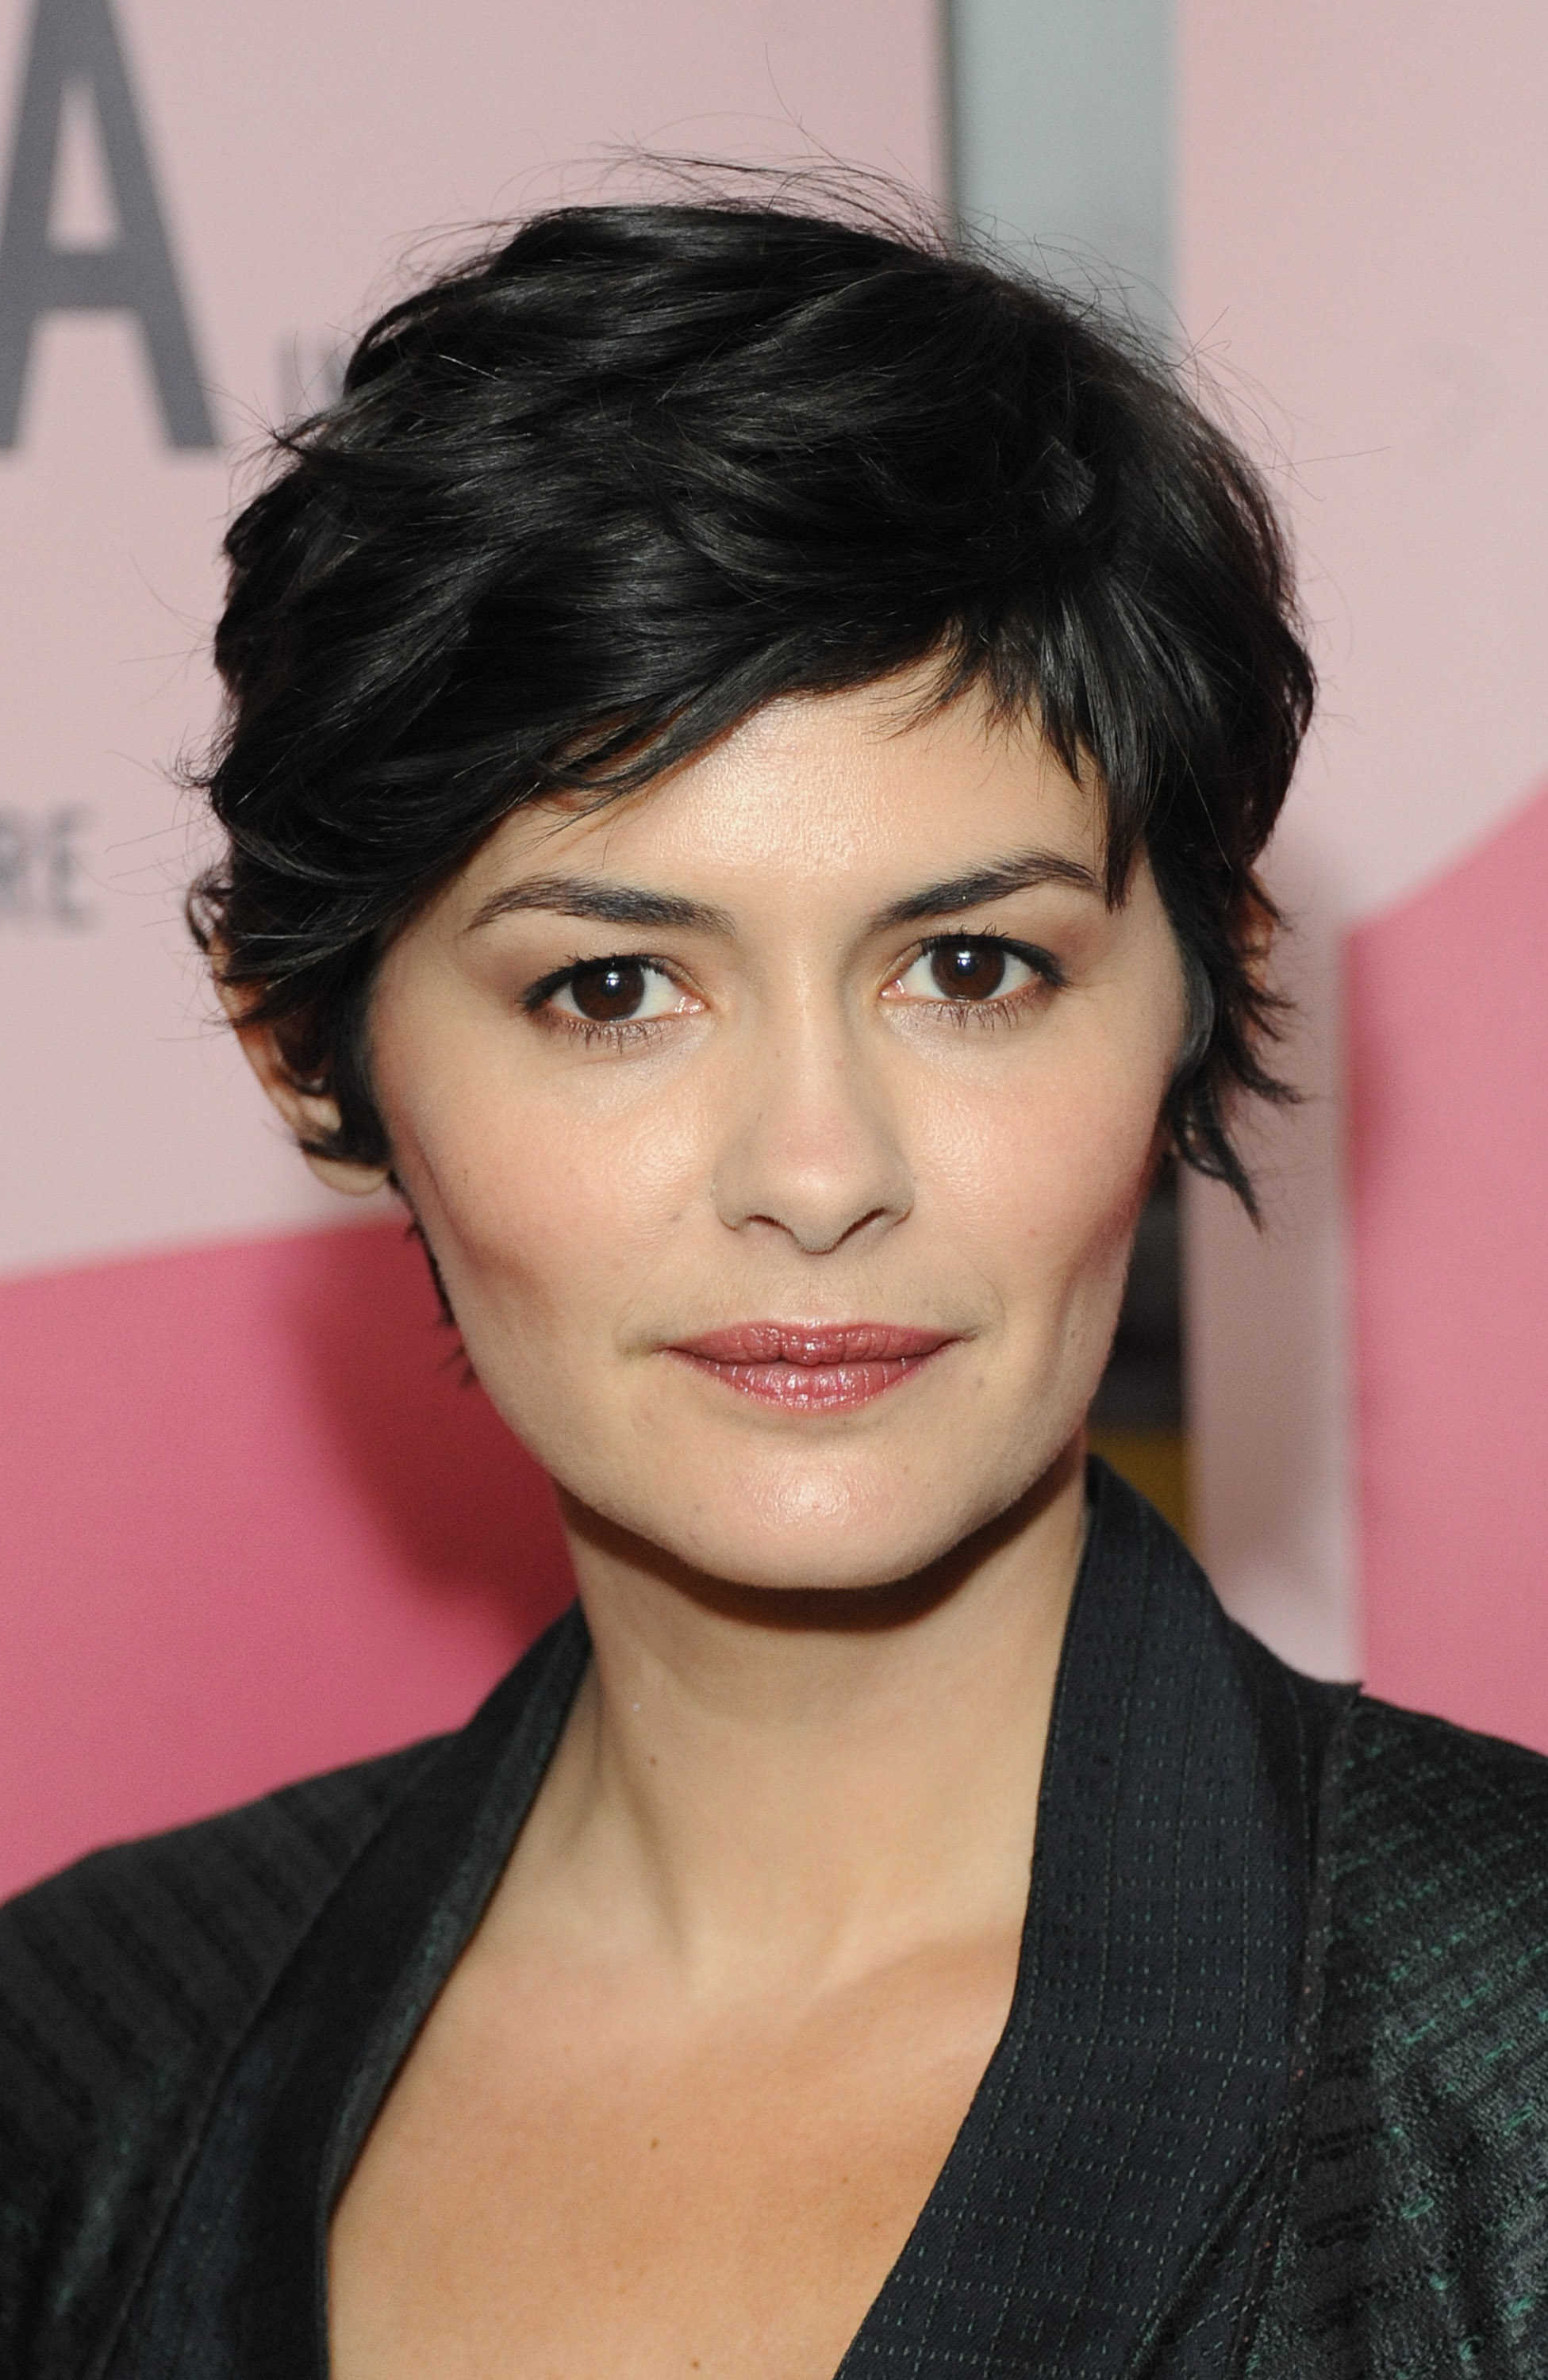 30 cute short hairstyles for women - how to style short haircuts